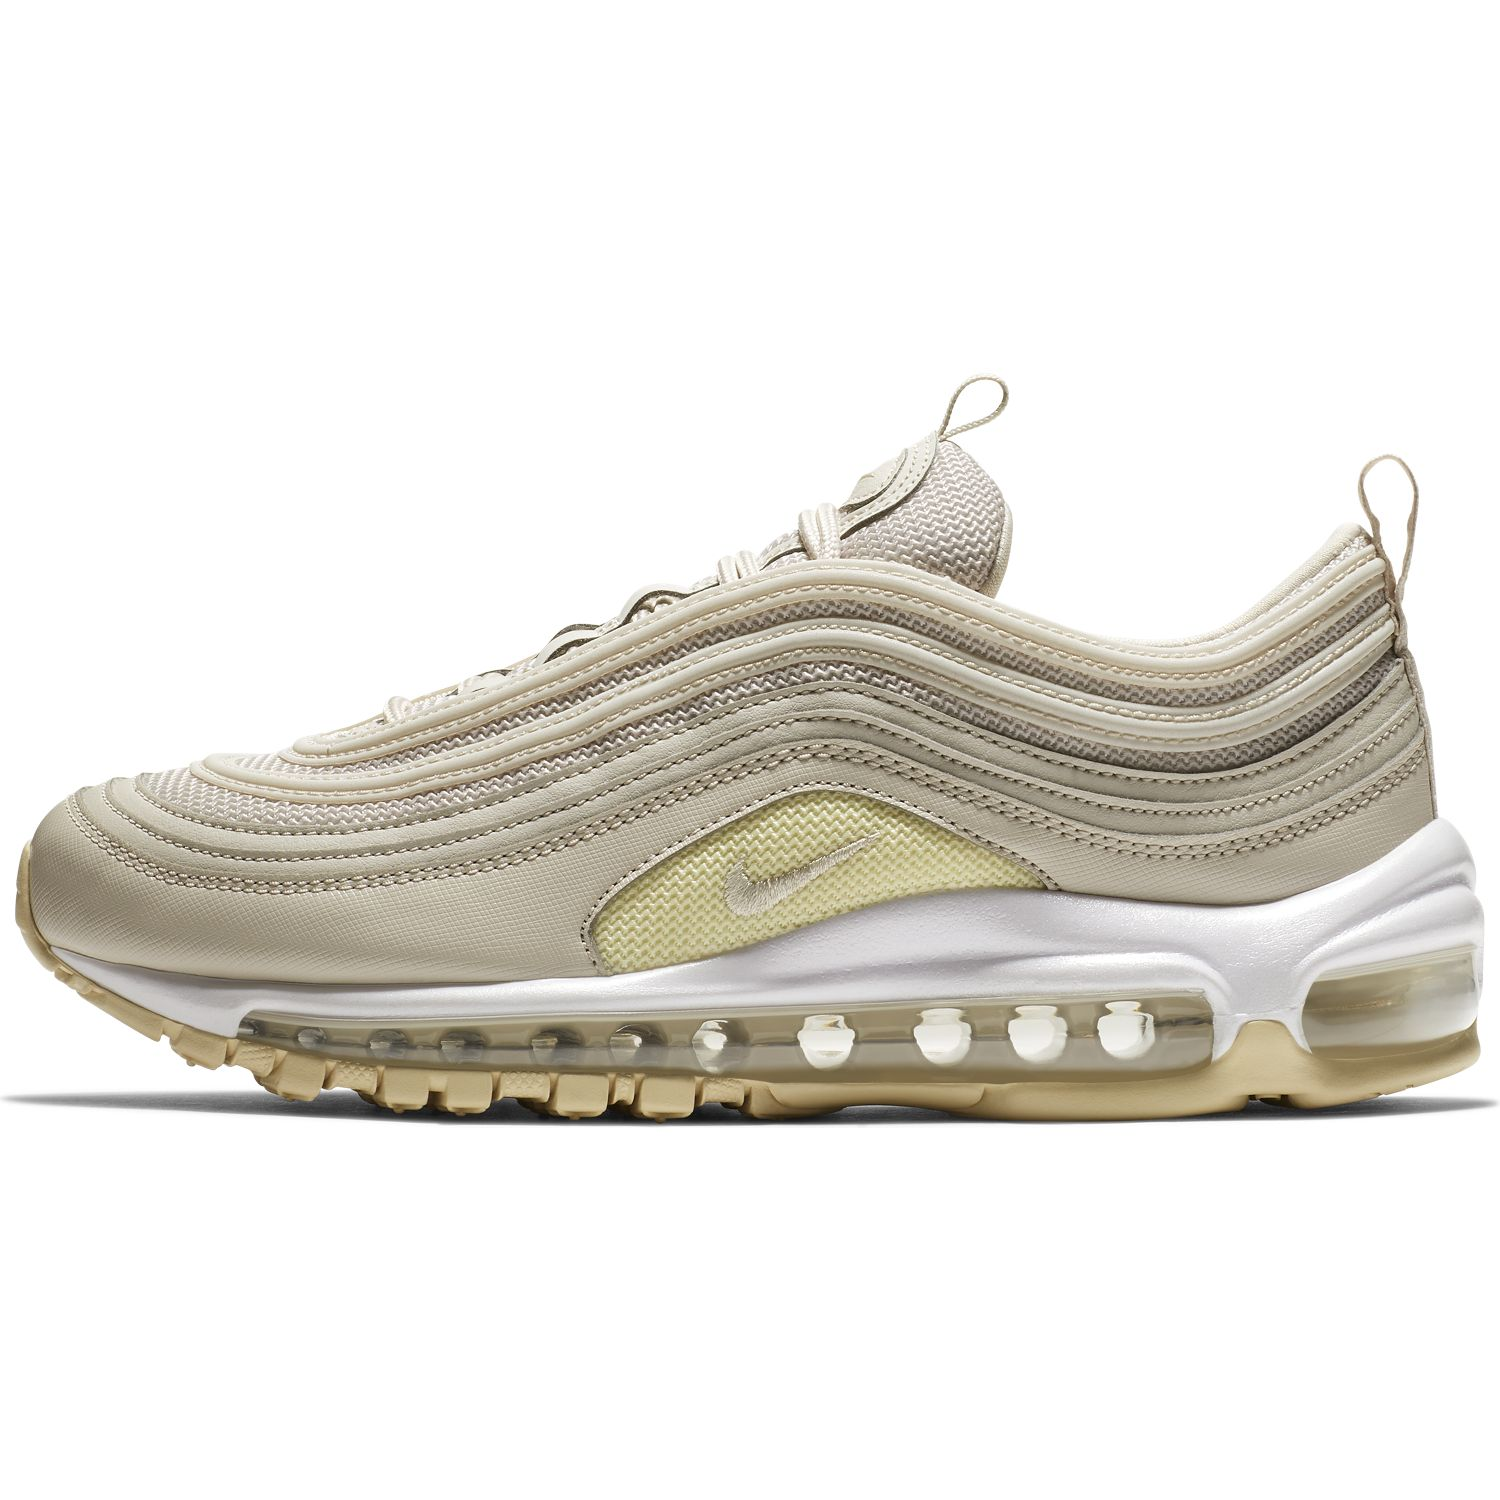 c2a3e309c2ad BUTY DAMSKIE LIFESTYLE NIKE AIR MAX 97 BEŻOWE 921733-013